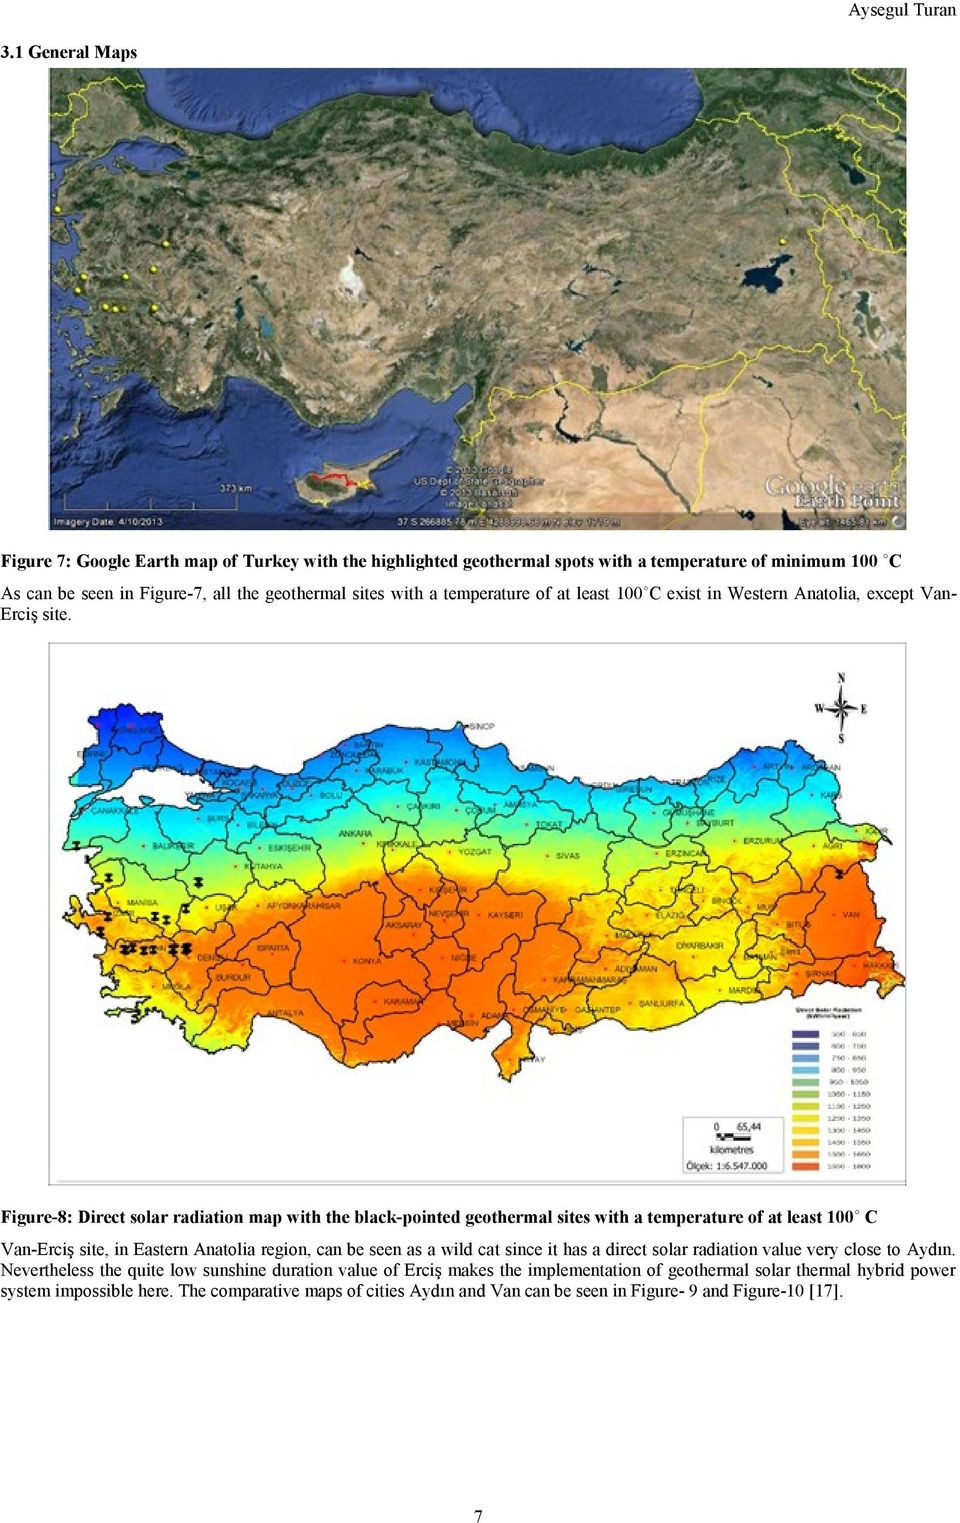 Figure-8: Direct solar radiation map with the black-pointed geothermal sites with a temperature of at least 100 C Van-Erciş site, in Eastern Anatolia region, can be seen as a wild cat since